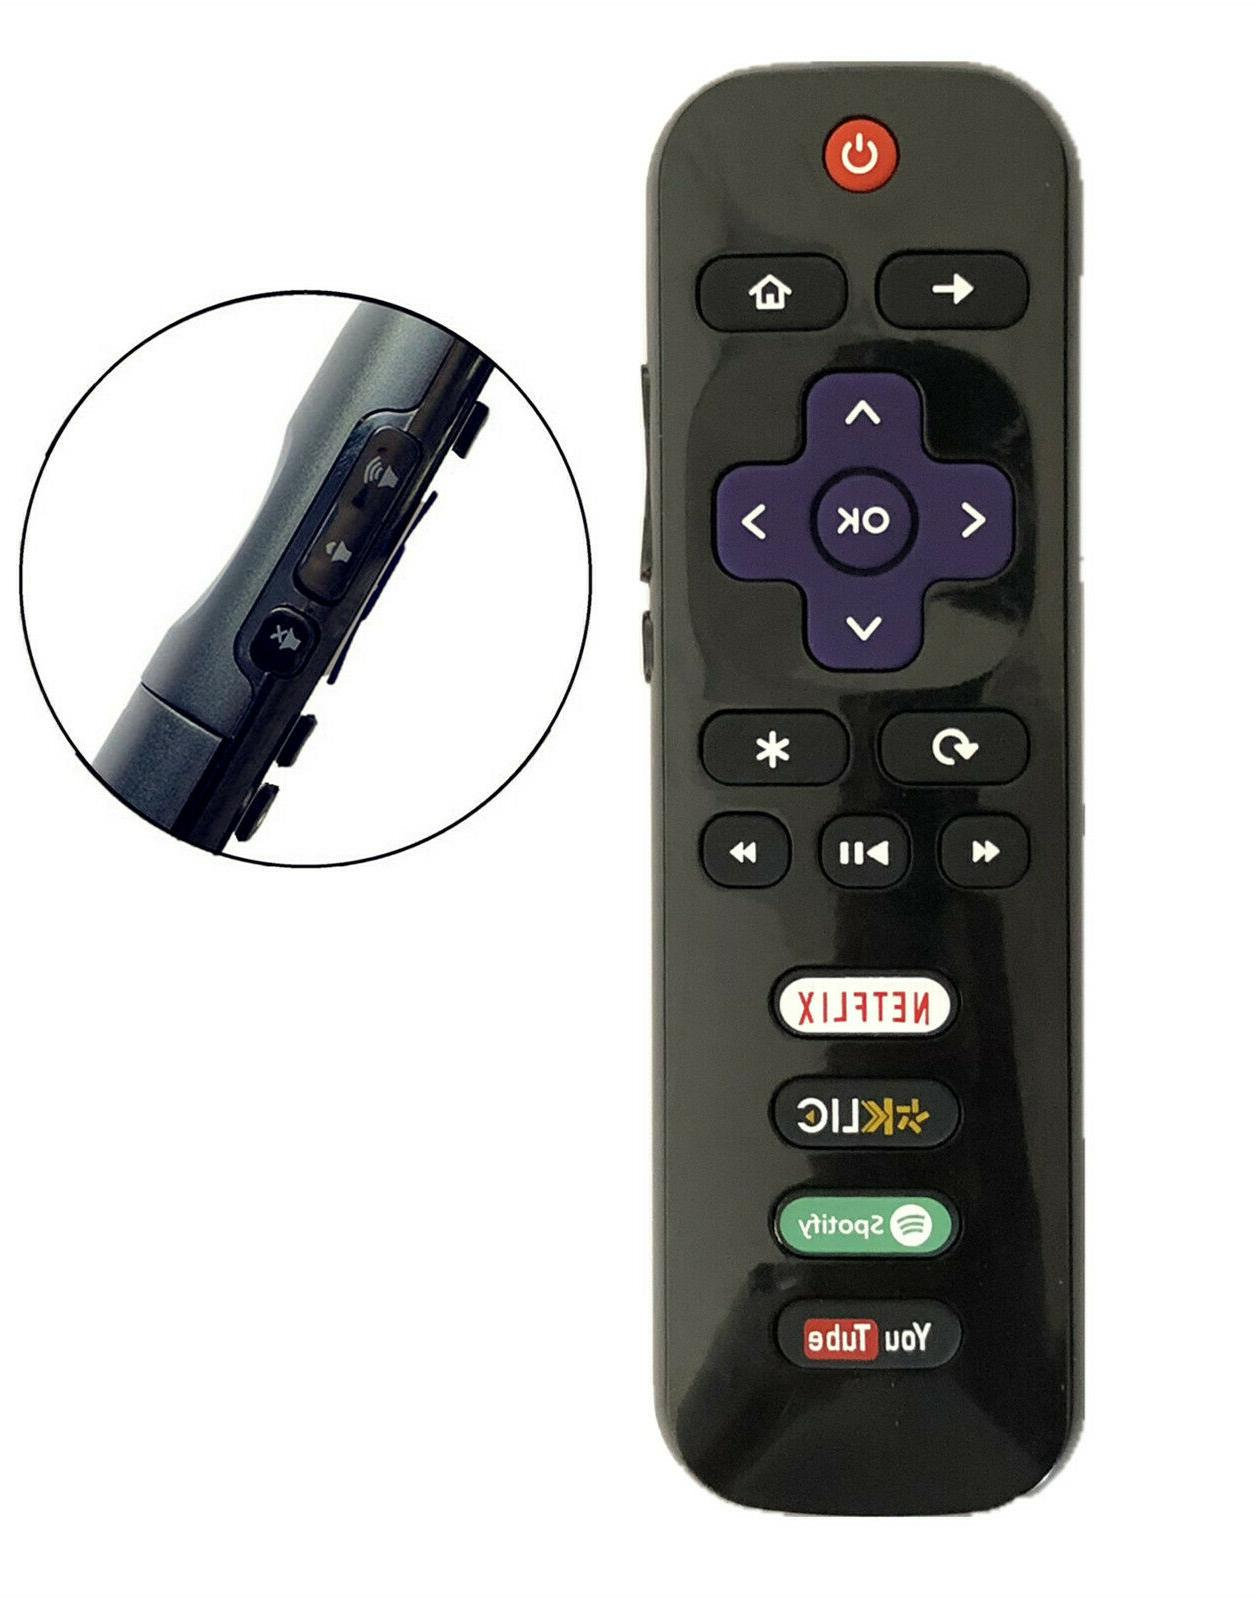 new replaced tcl roku tv remote rc280